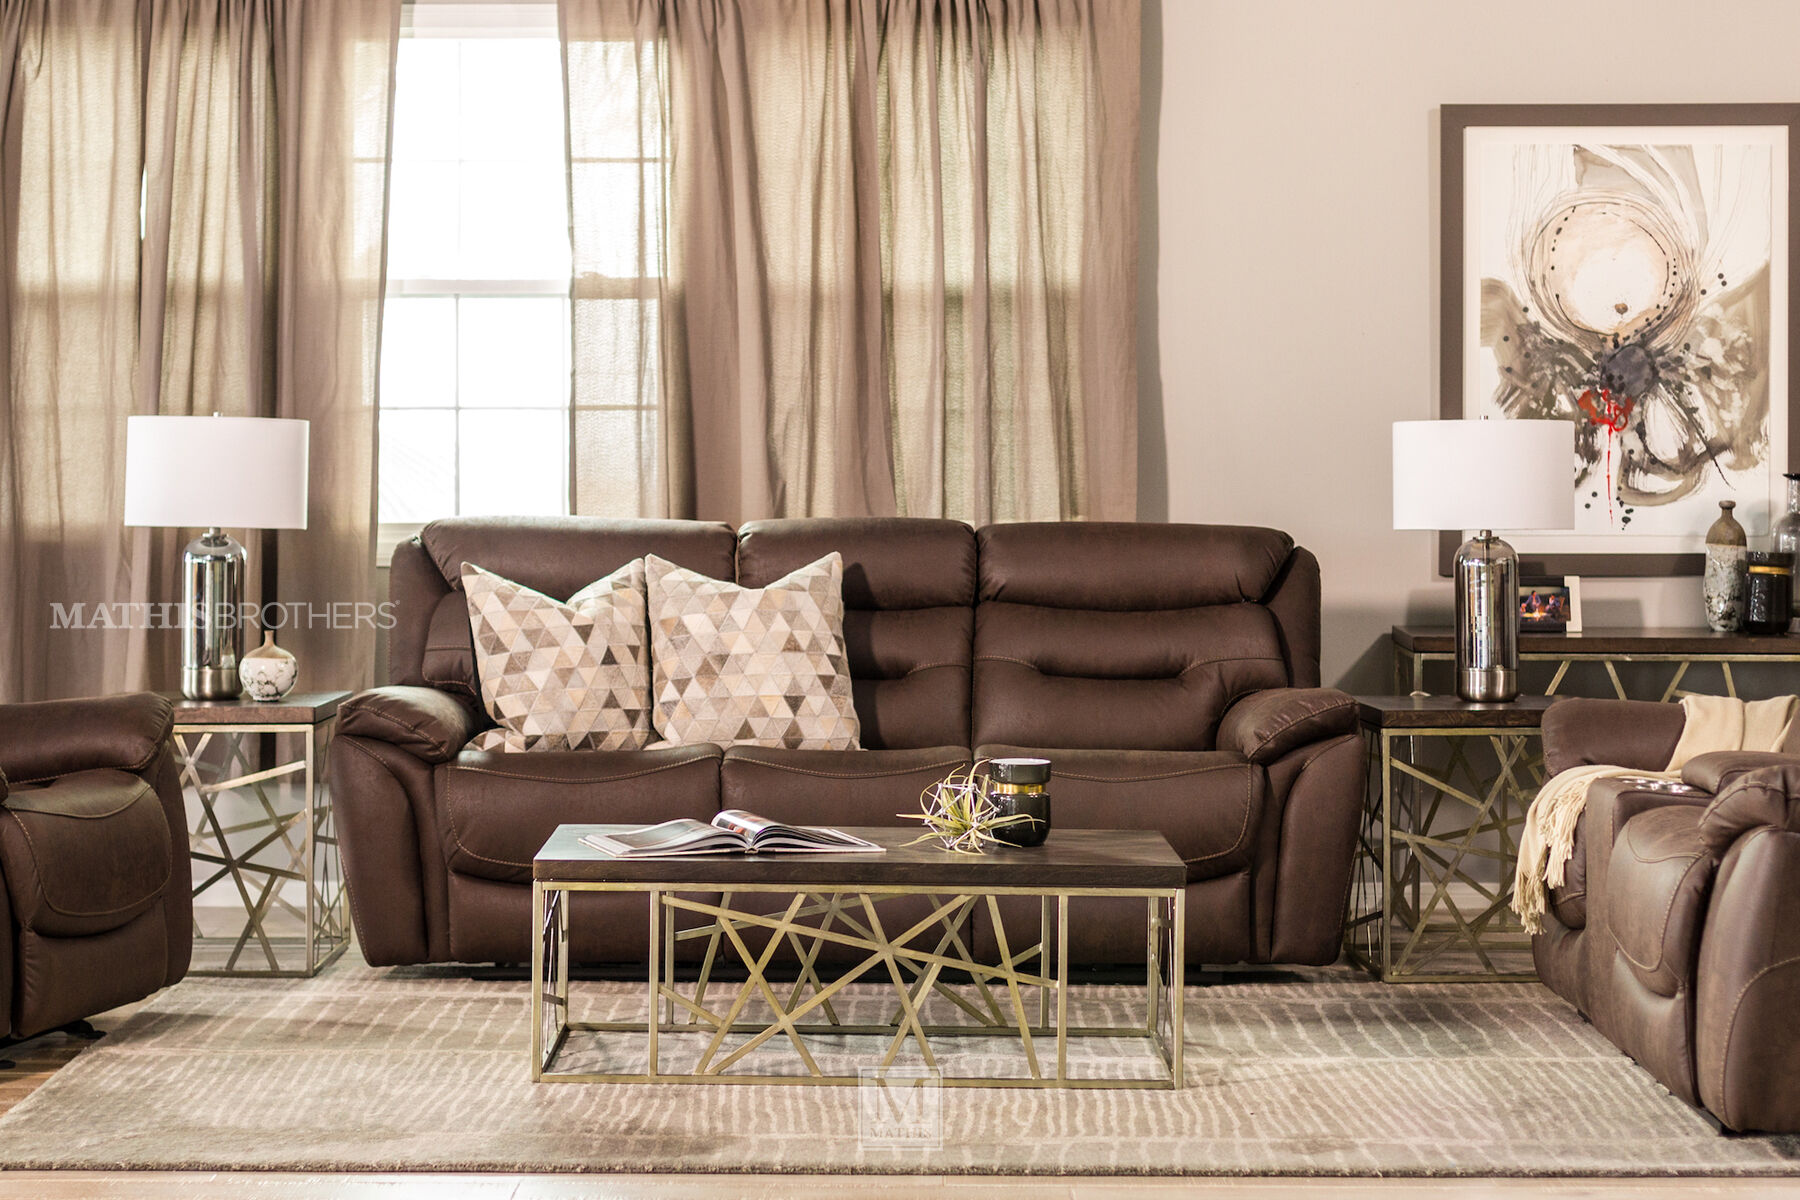 living room furniture ma interior design pictures for in india stores mathis brothers power reclining sofa chocolate